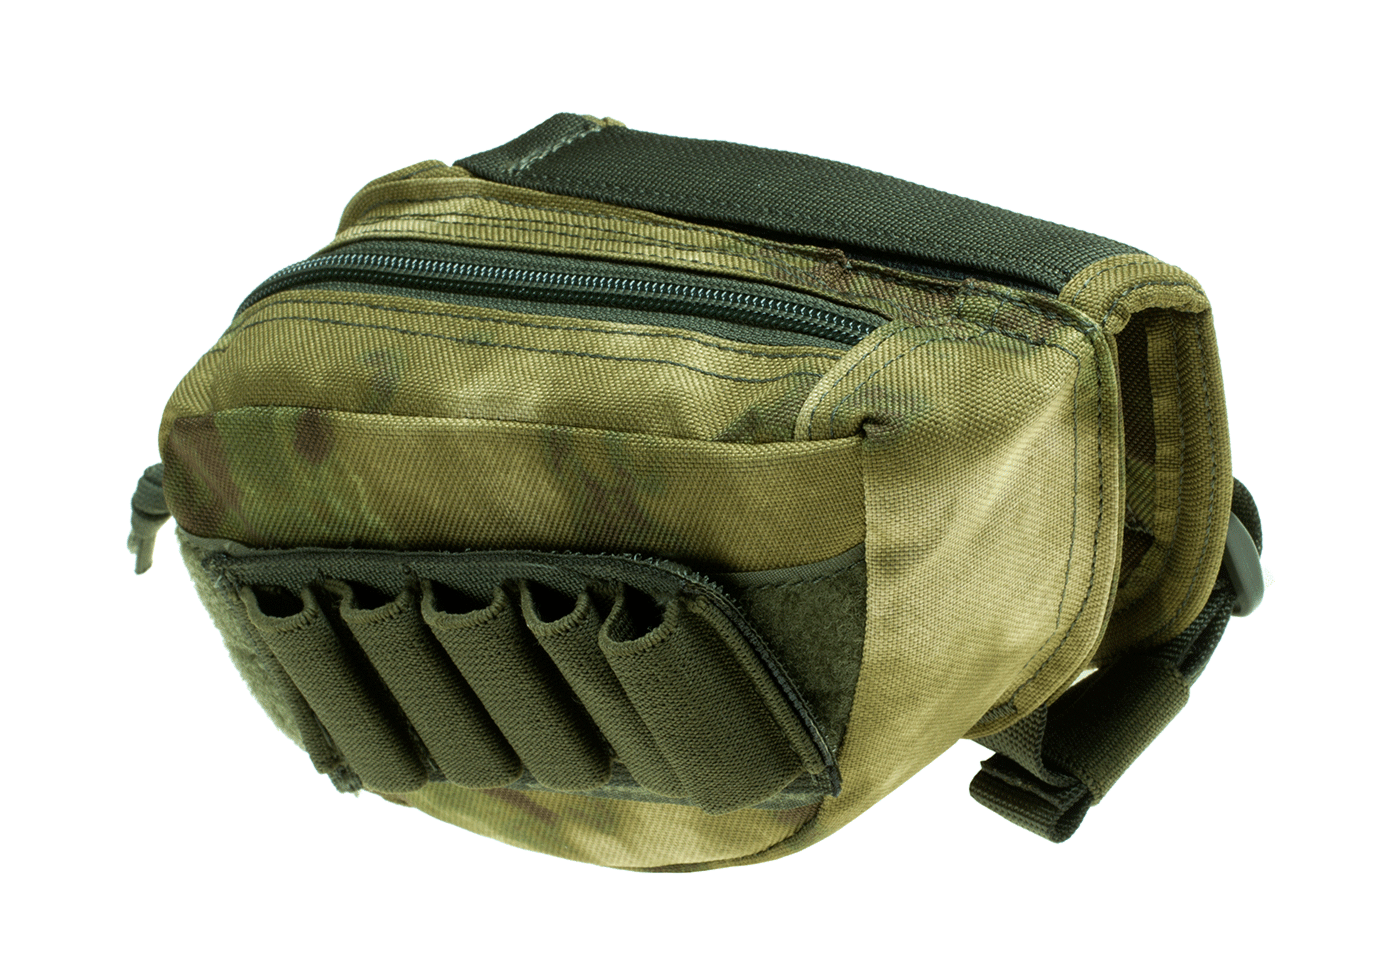 Invader Gear Invader Gear Stock Pad & Pouch – Everglade